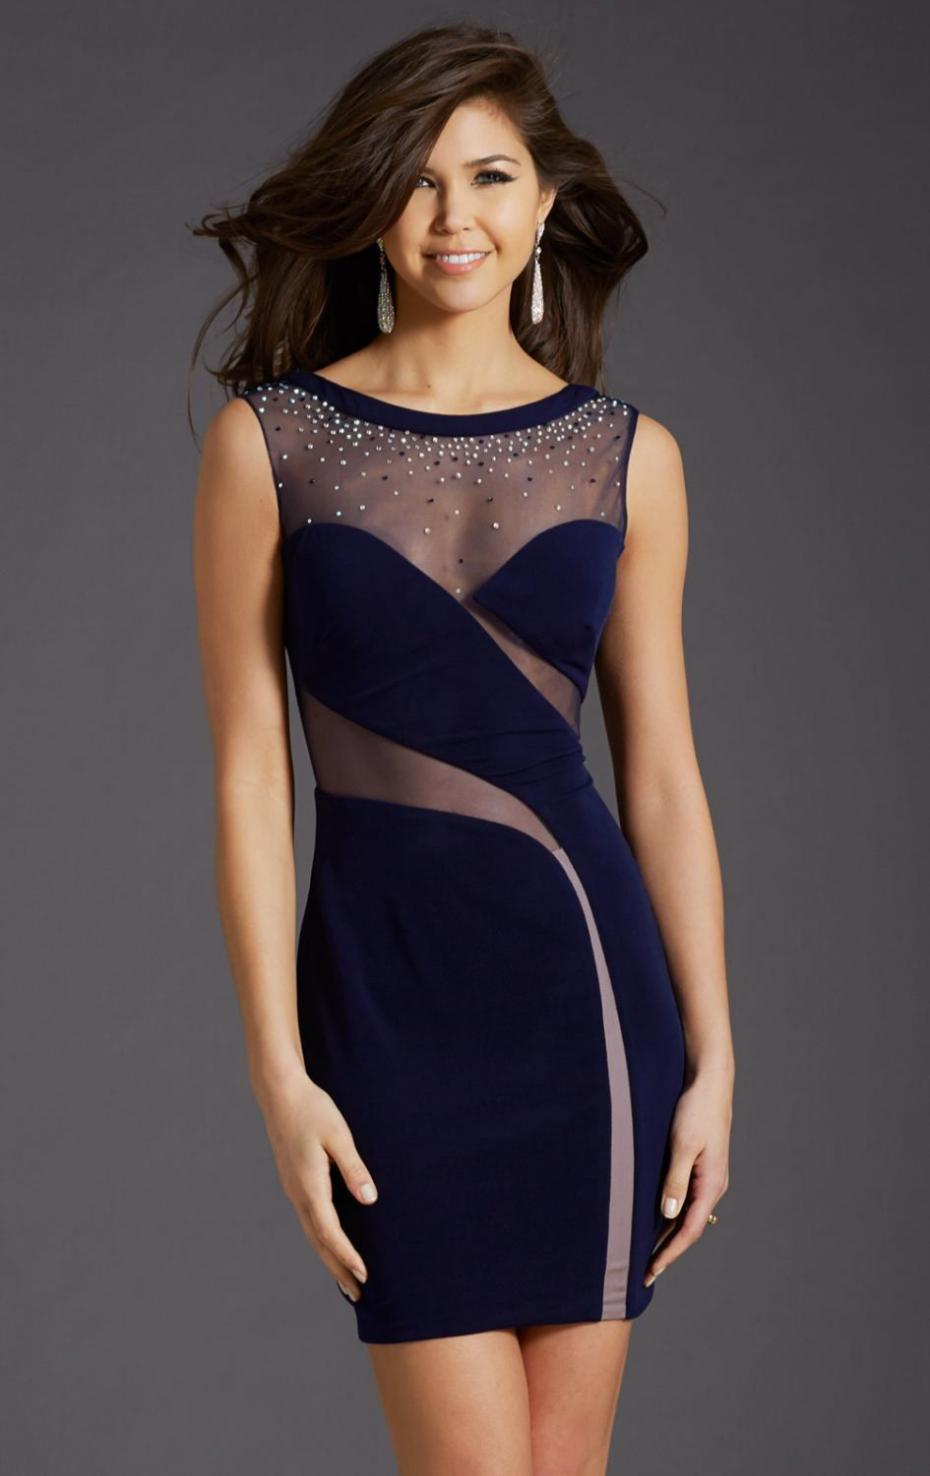 Tight Blue Homecoming Dresses  Dress images